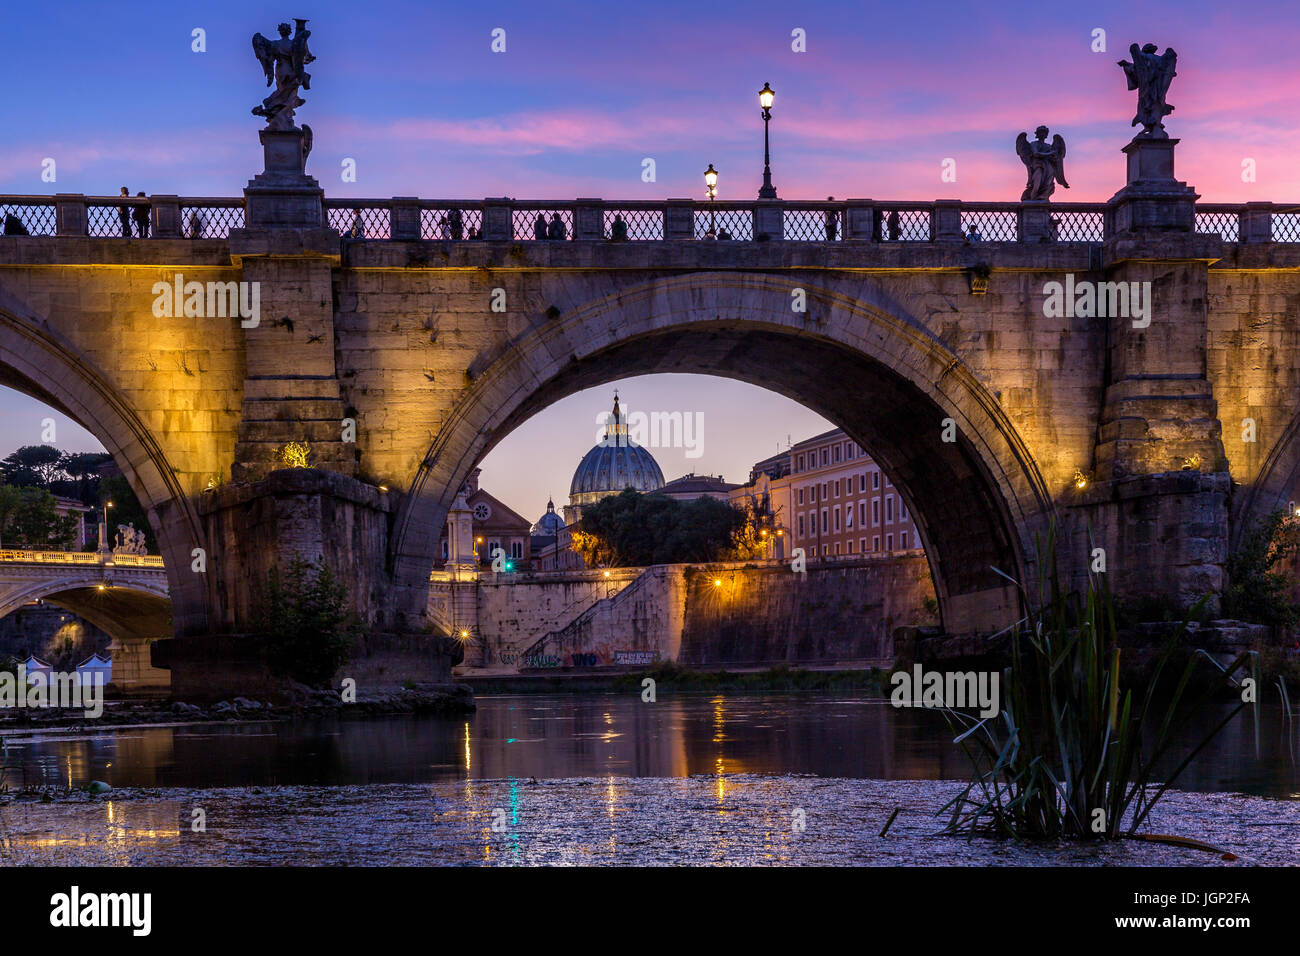 Saint Peter's Basilica with Sant'Angelo's bridge over Tiber at sunset, Rome, Italy - Stock Image